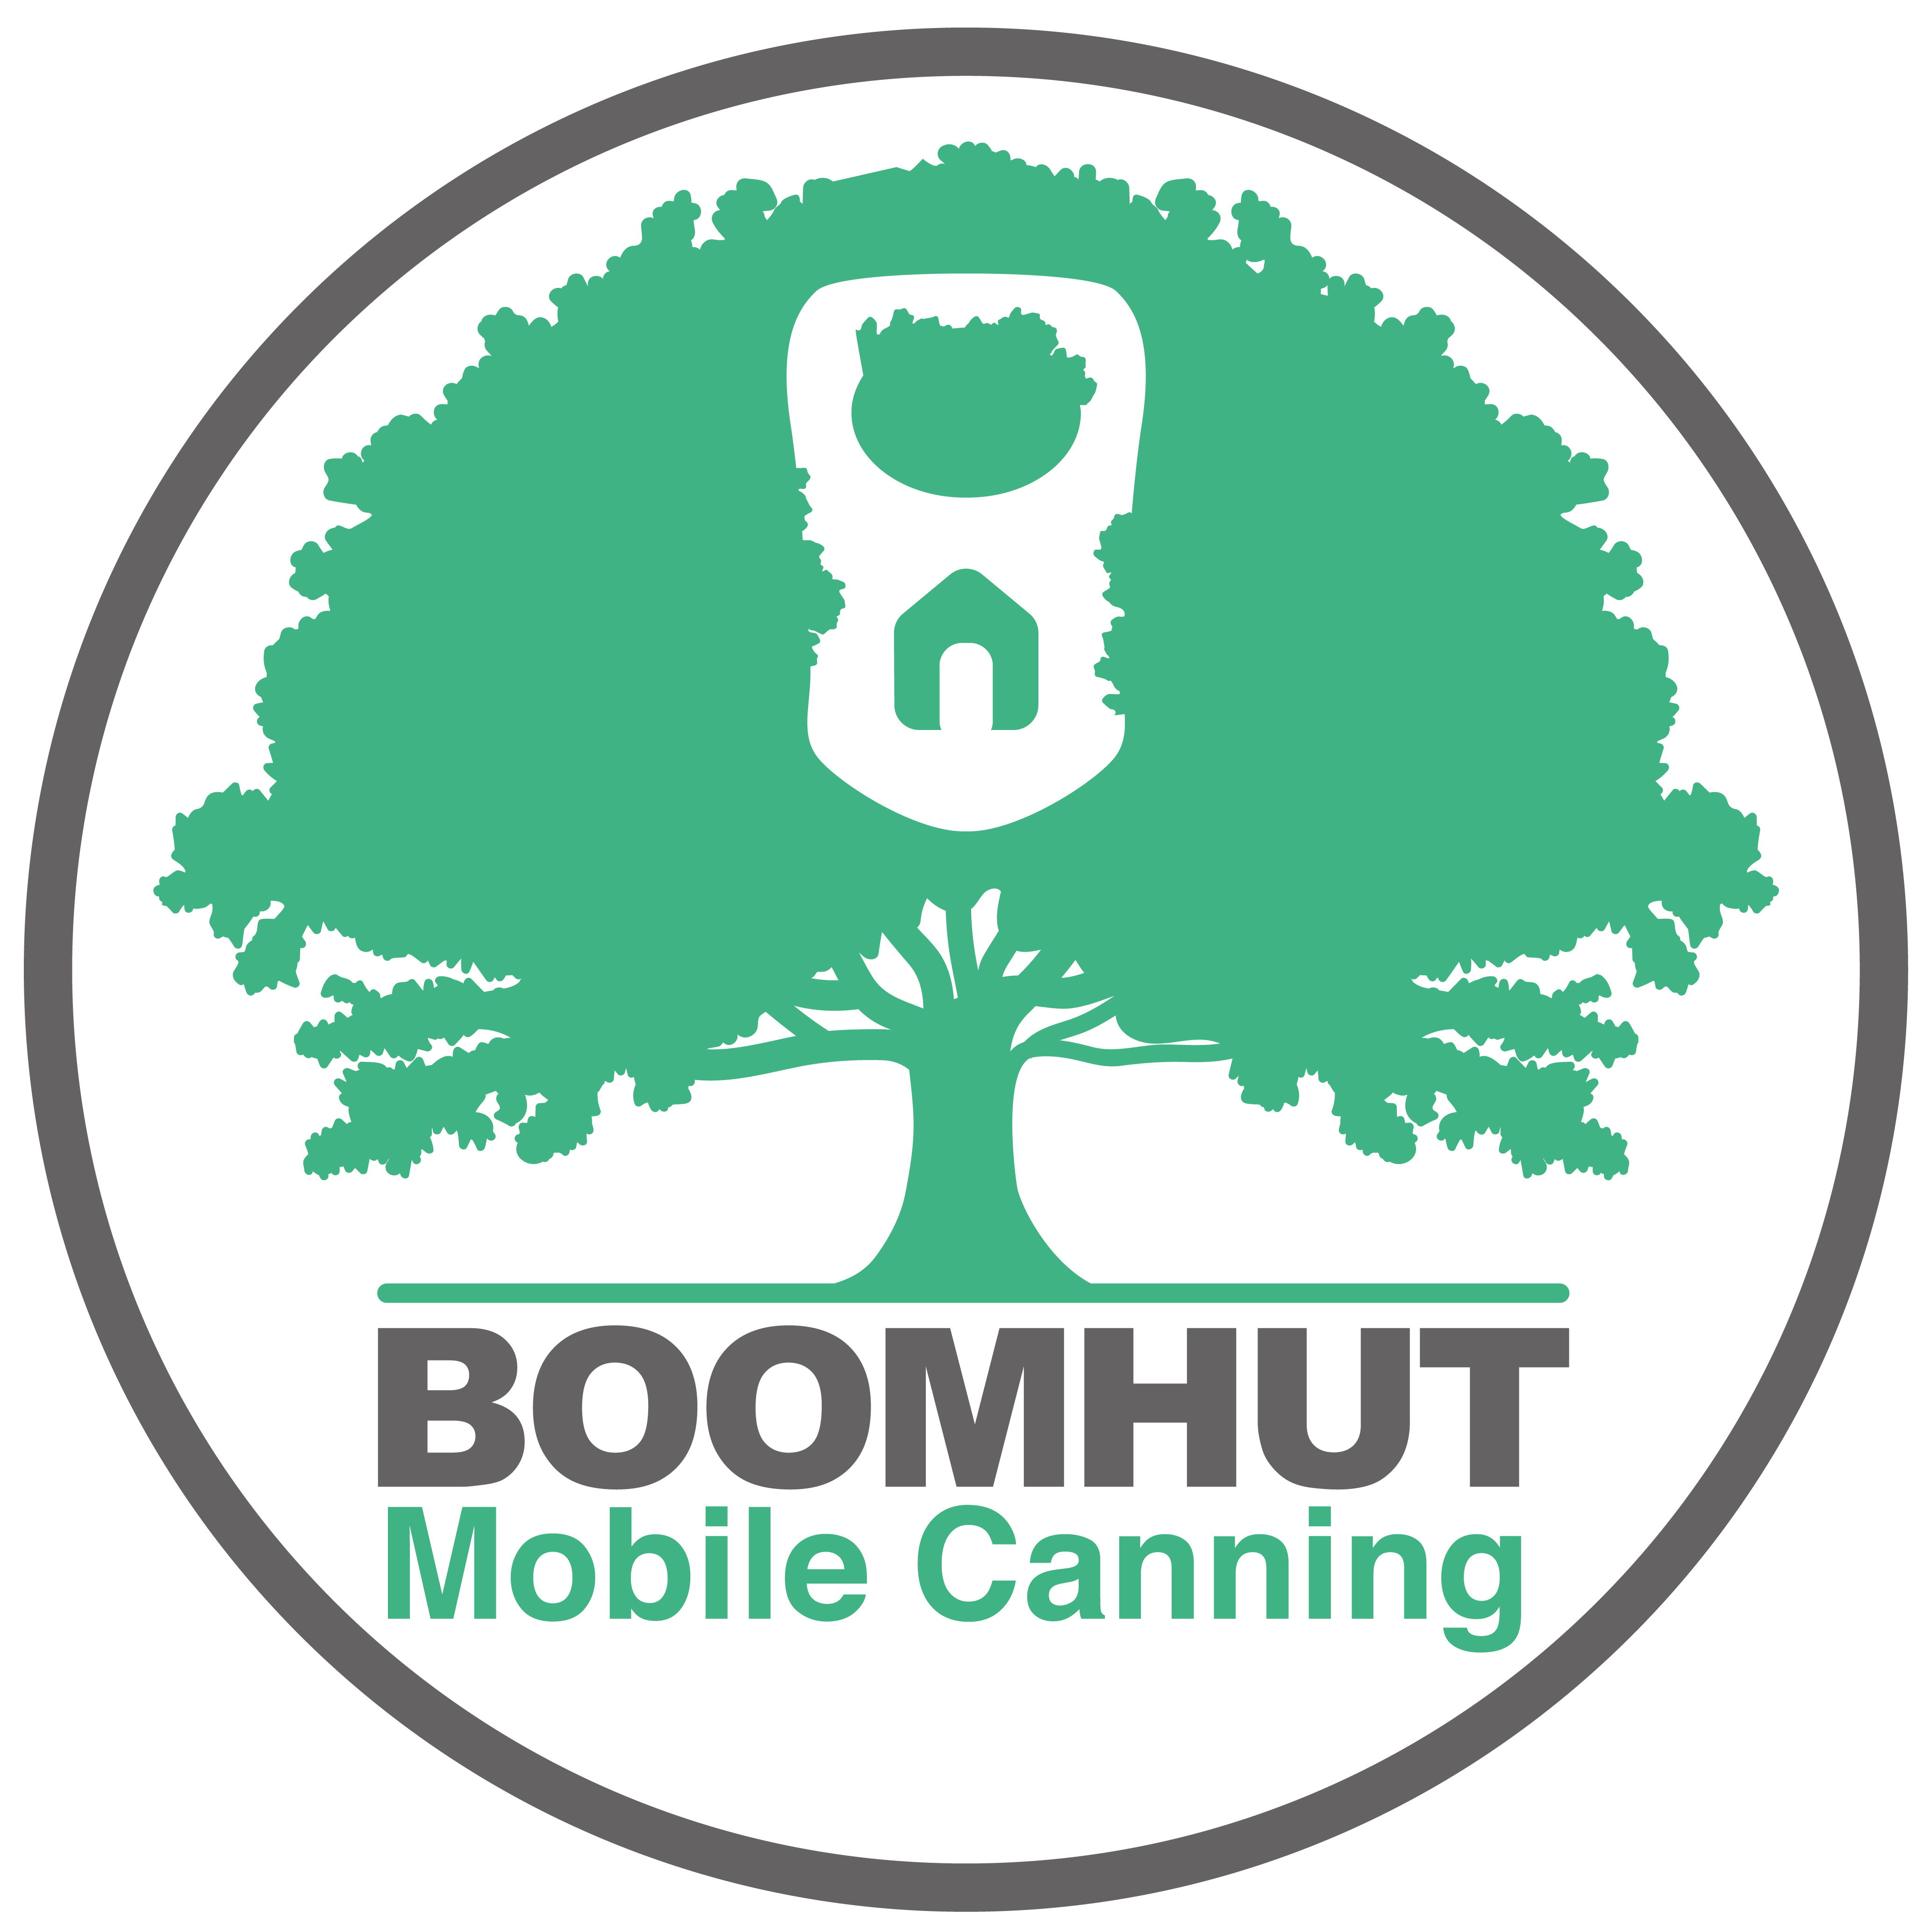 Boomhut Mobile Canning